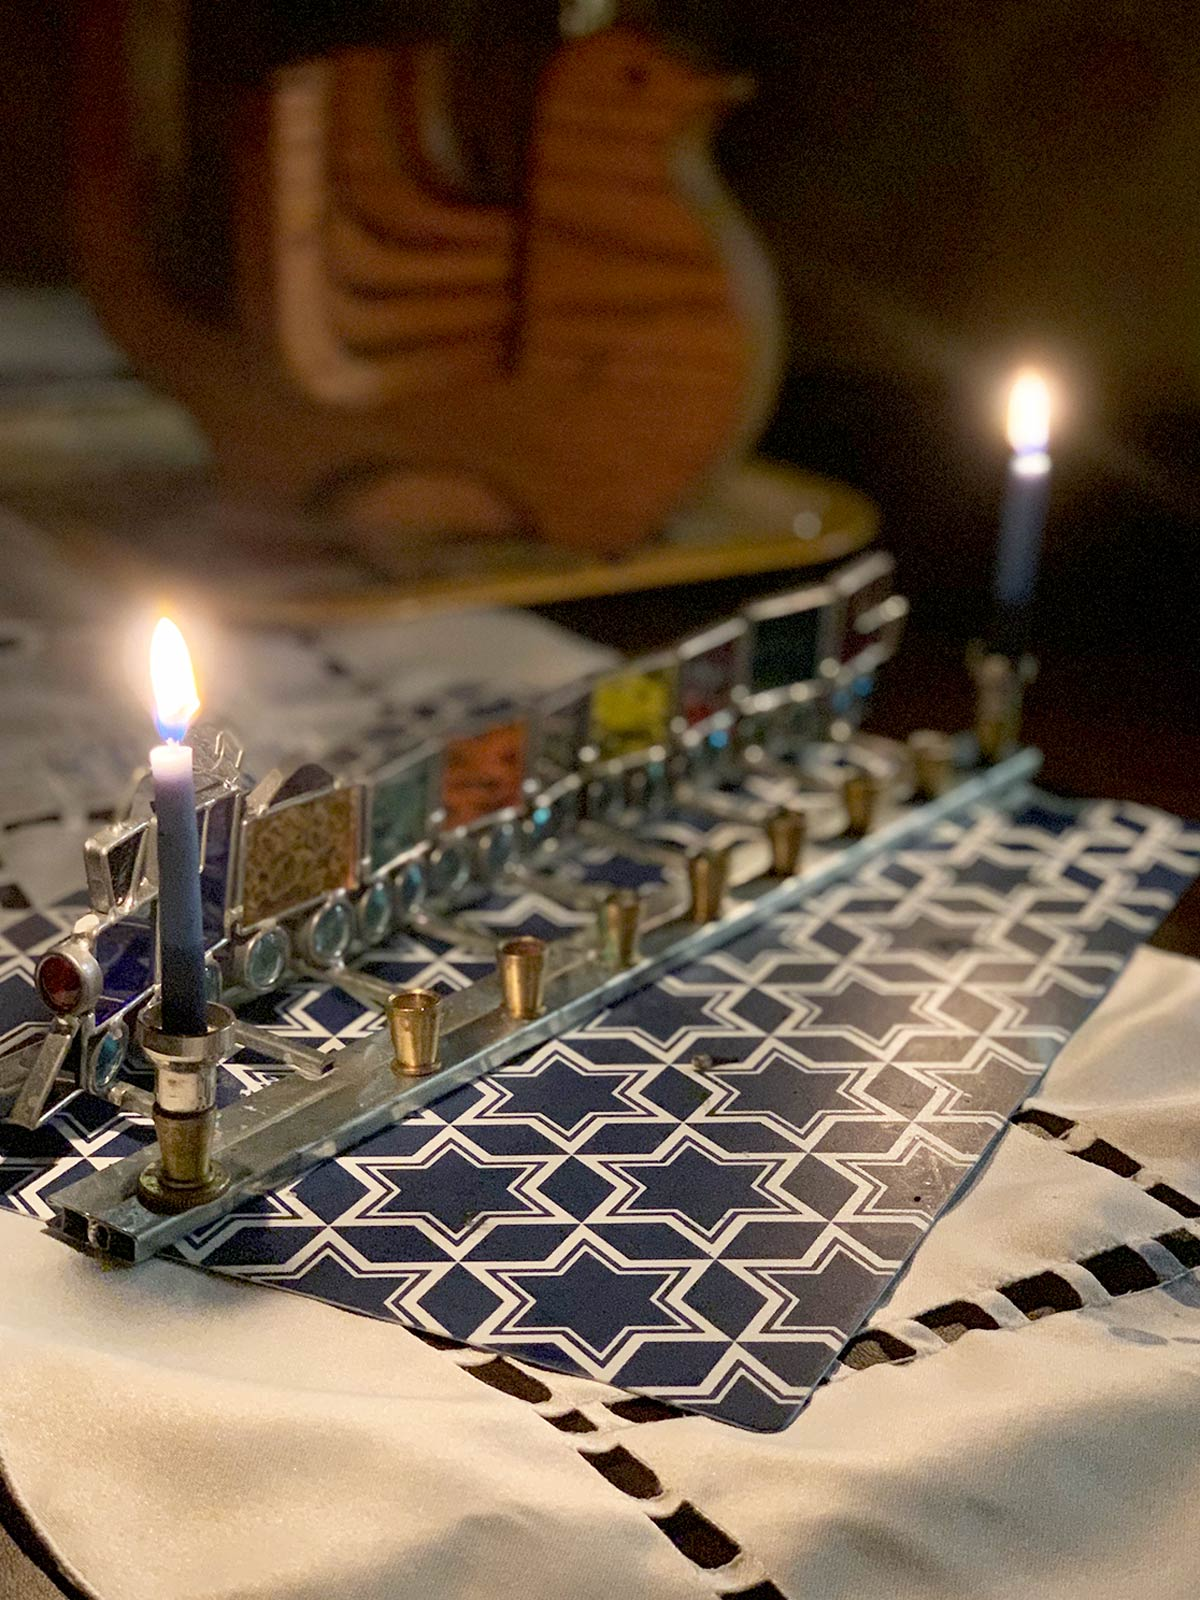 2 hanukkiah with one lit in the foreground